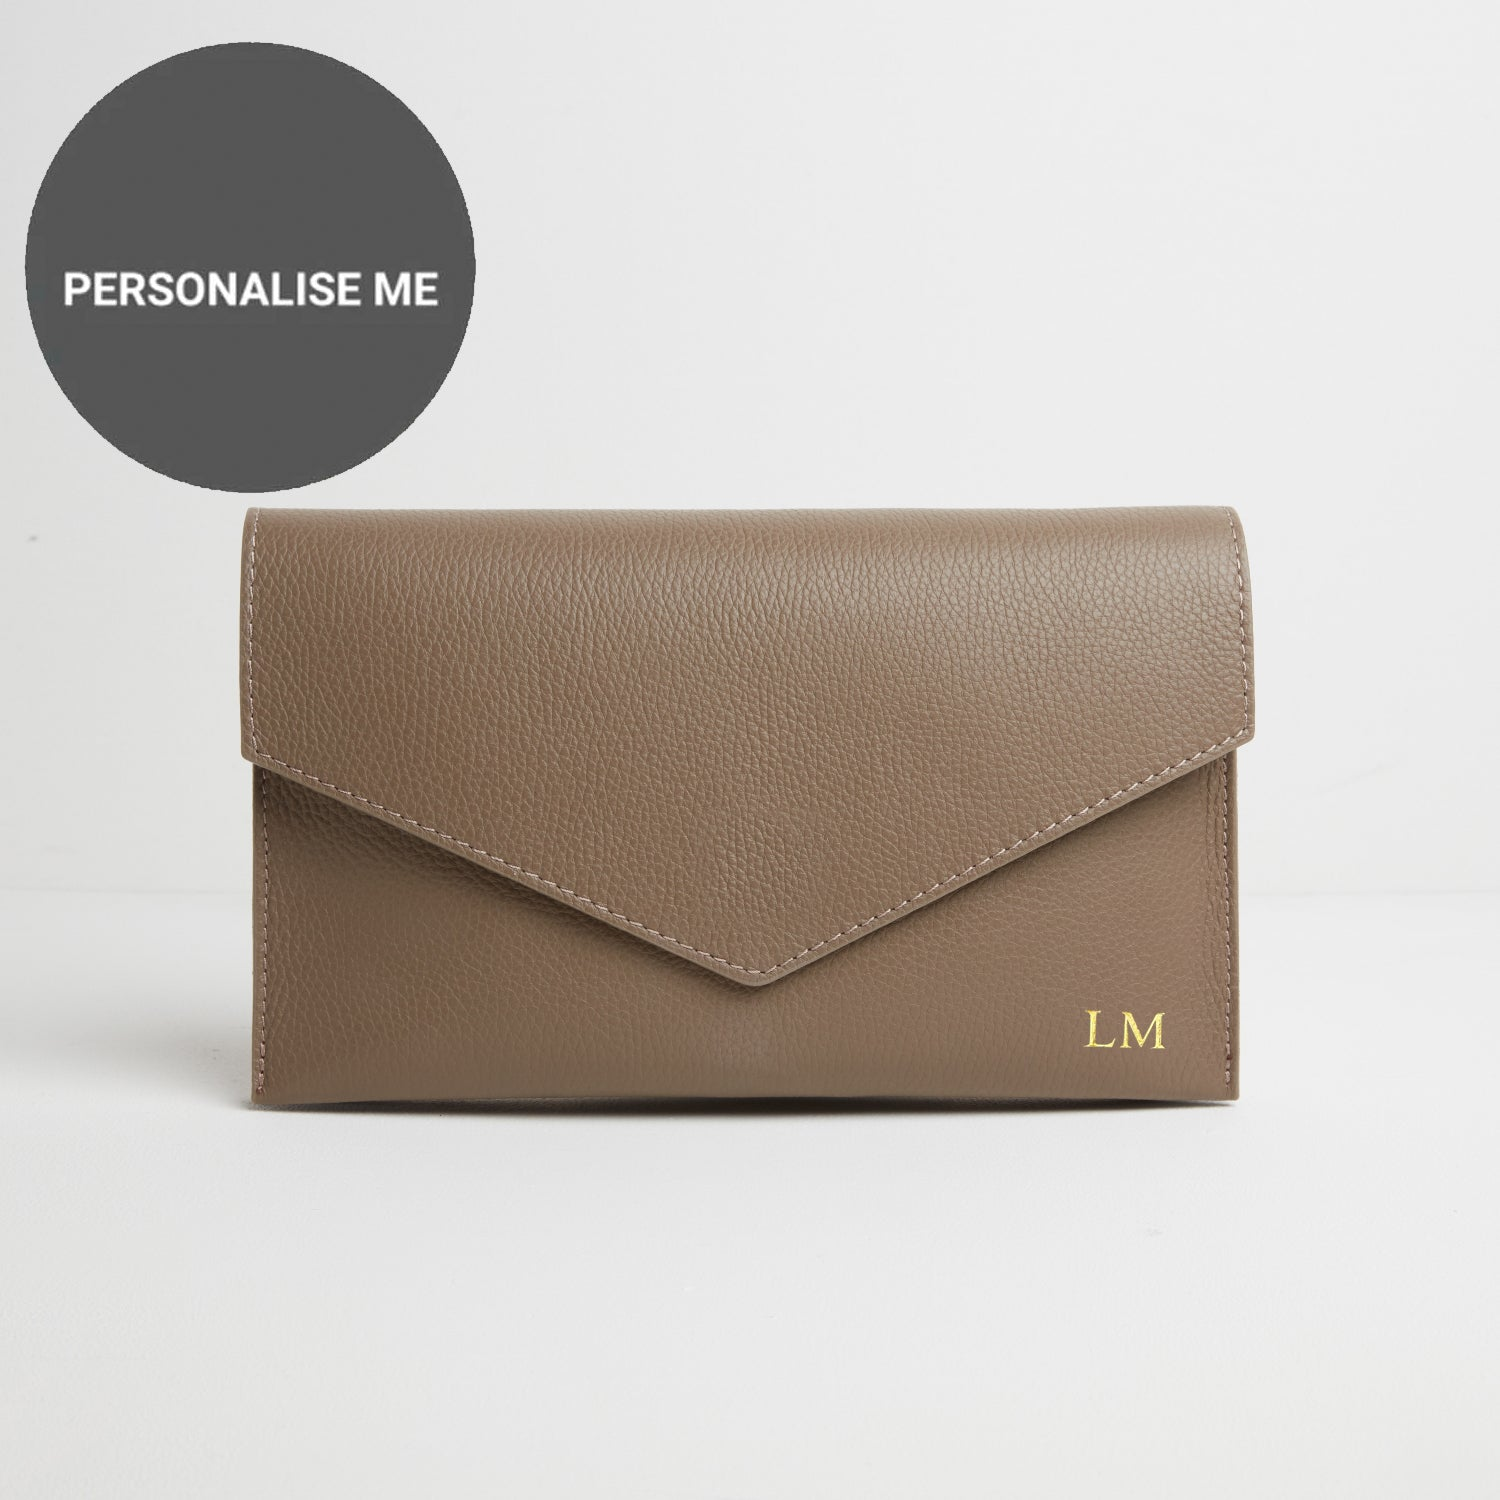 Puglia Clutch Bag in Taupe